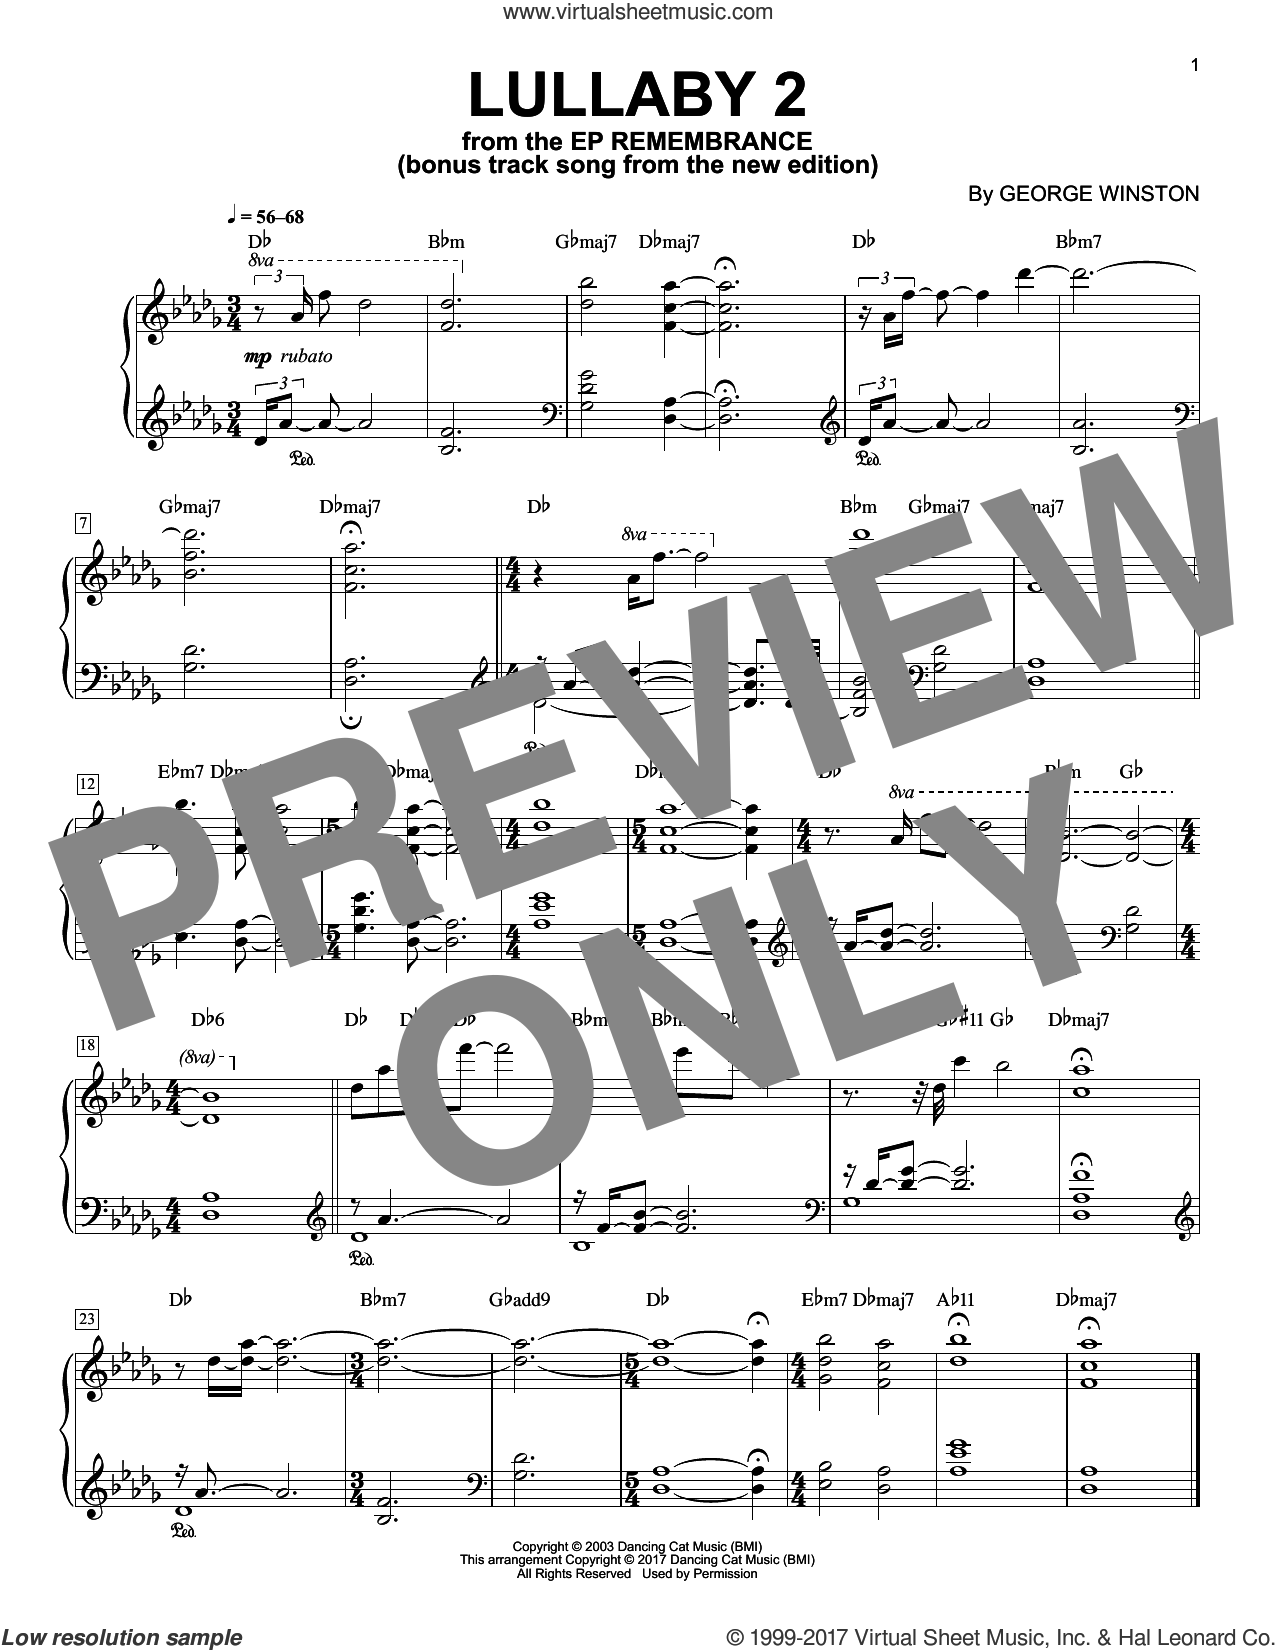 Lullaby 2 sheet music for piano solo by George Winston, intermediate skill level